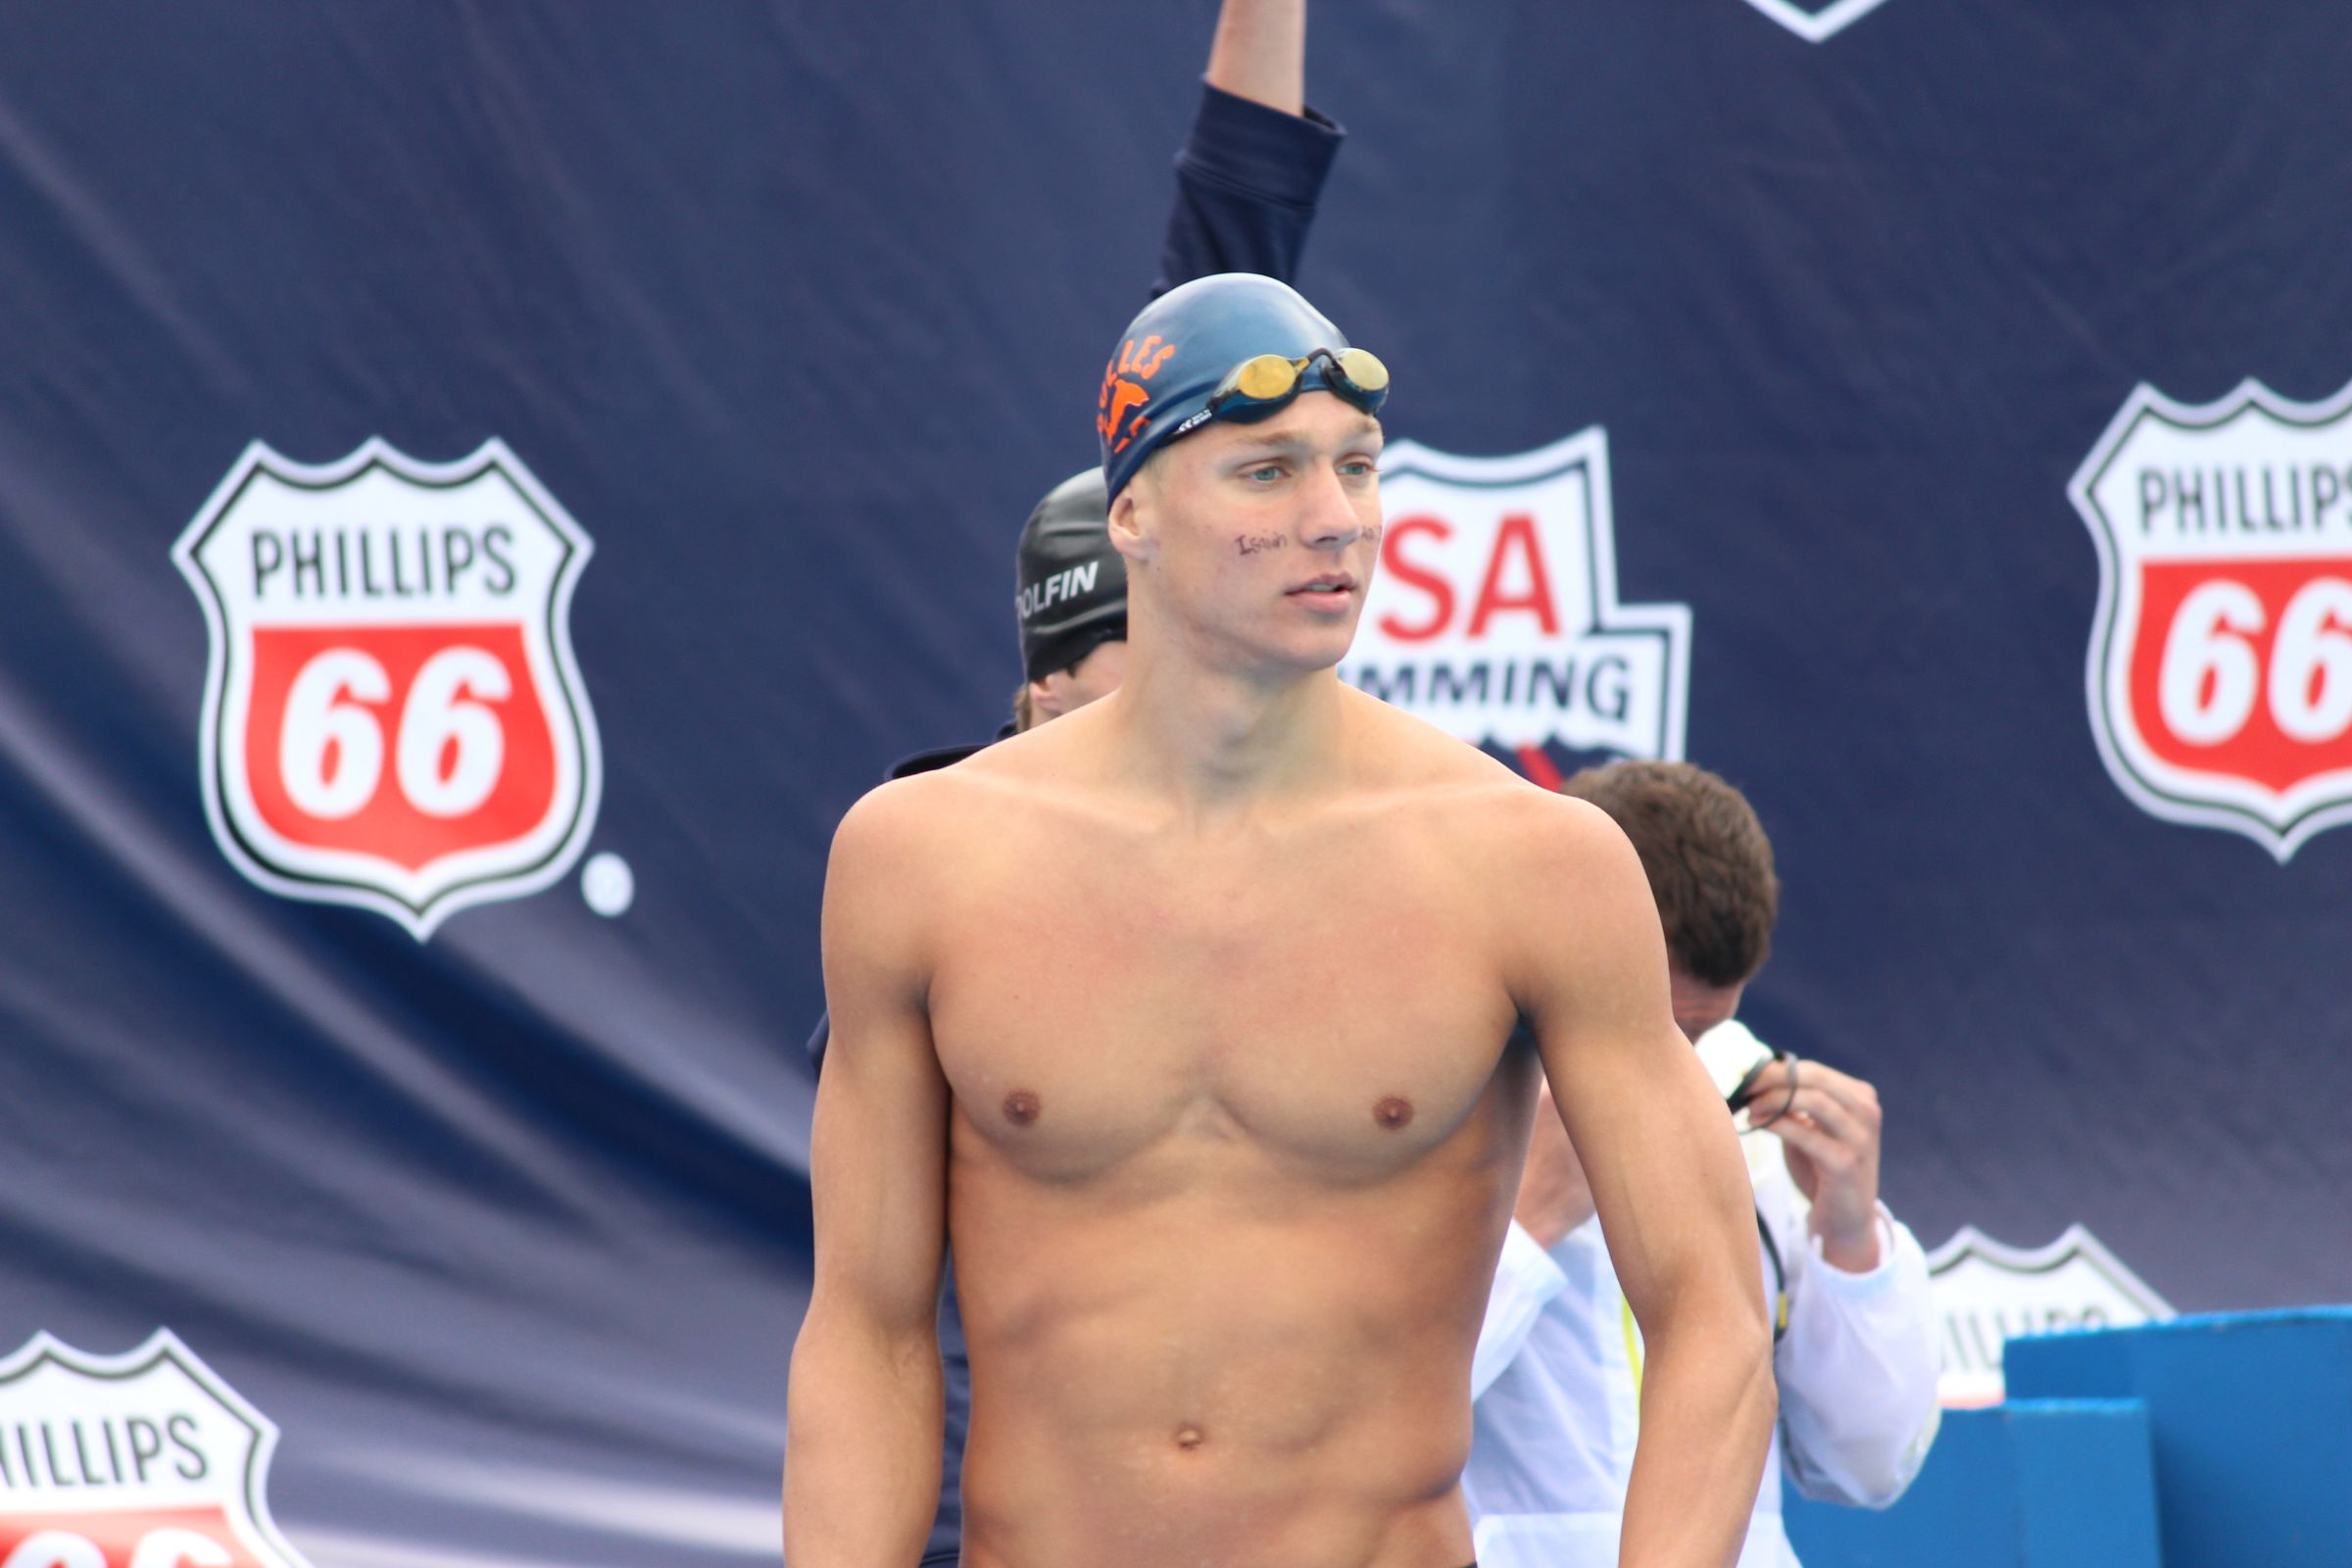 Caeleb Dressel earned a  million dollar salary, leaving the net worth at 0.1 million in 2017